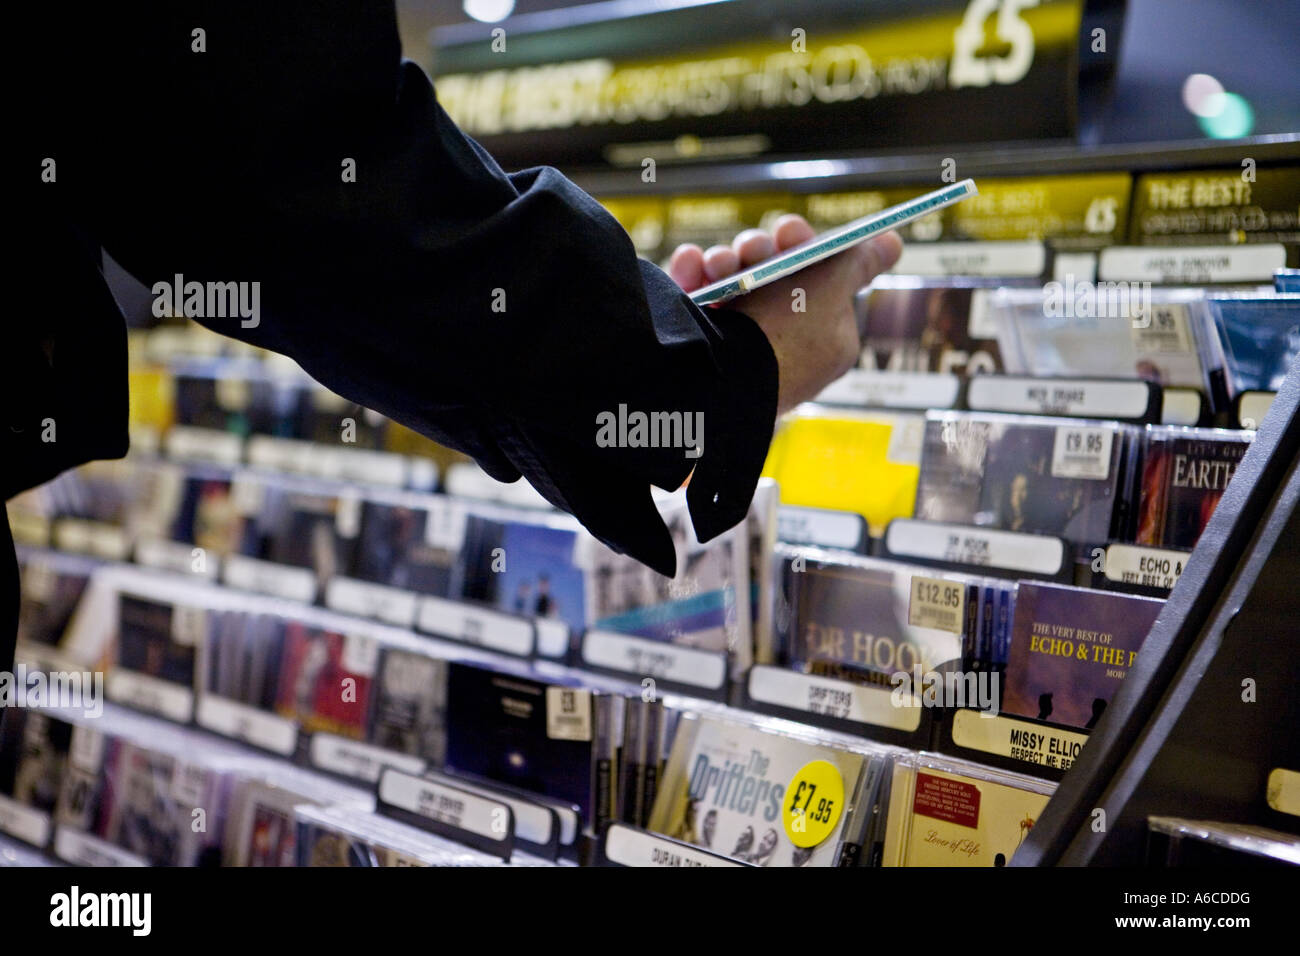 Man picks up CD off shelf in HMV at Piccadilly Circus CD sales are dropping as online music downloads increase - Stock Image